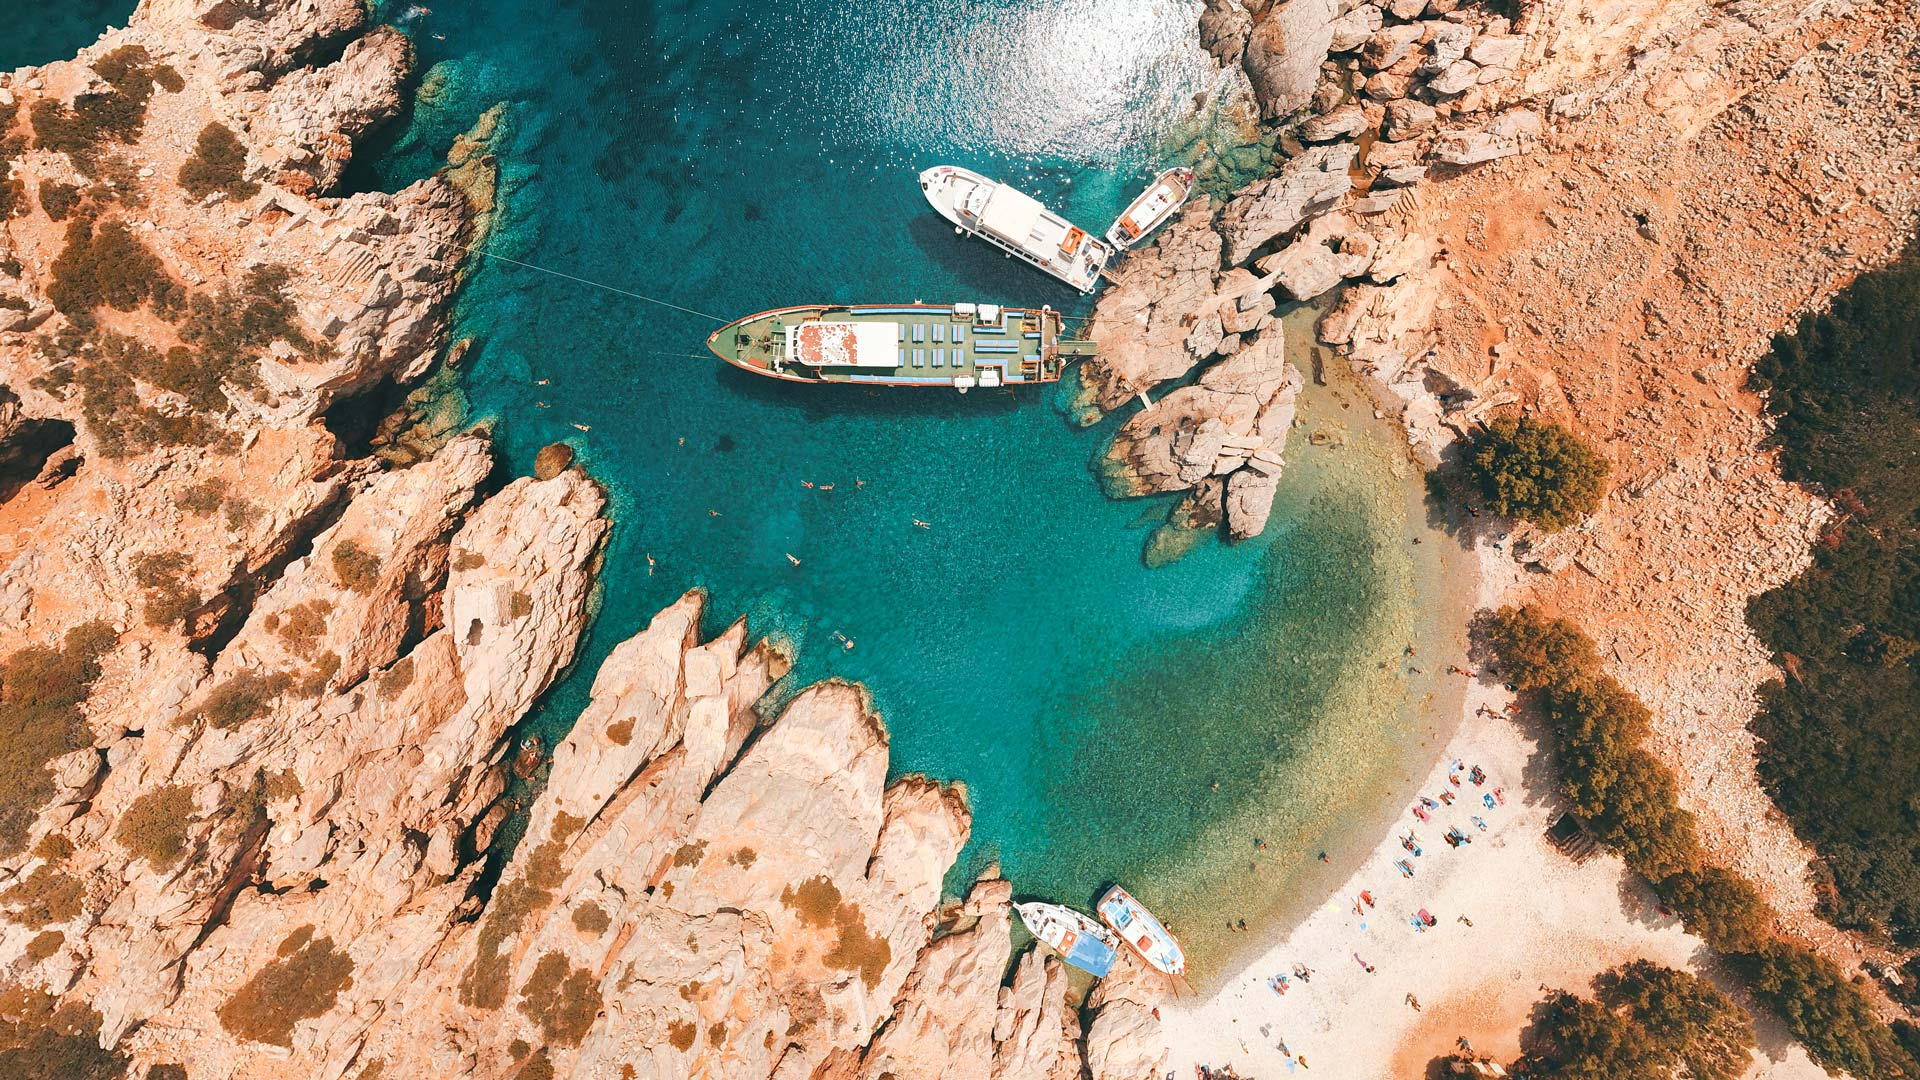 Depending on which boat excursion you take from Karpathos, your day trip to Saria will involve soaking up the feeling of freedom on the beach and swimming in wonderfully clear water